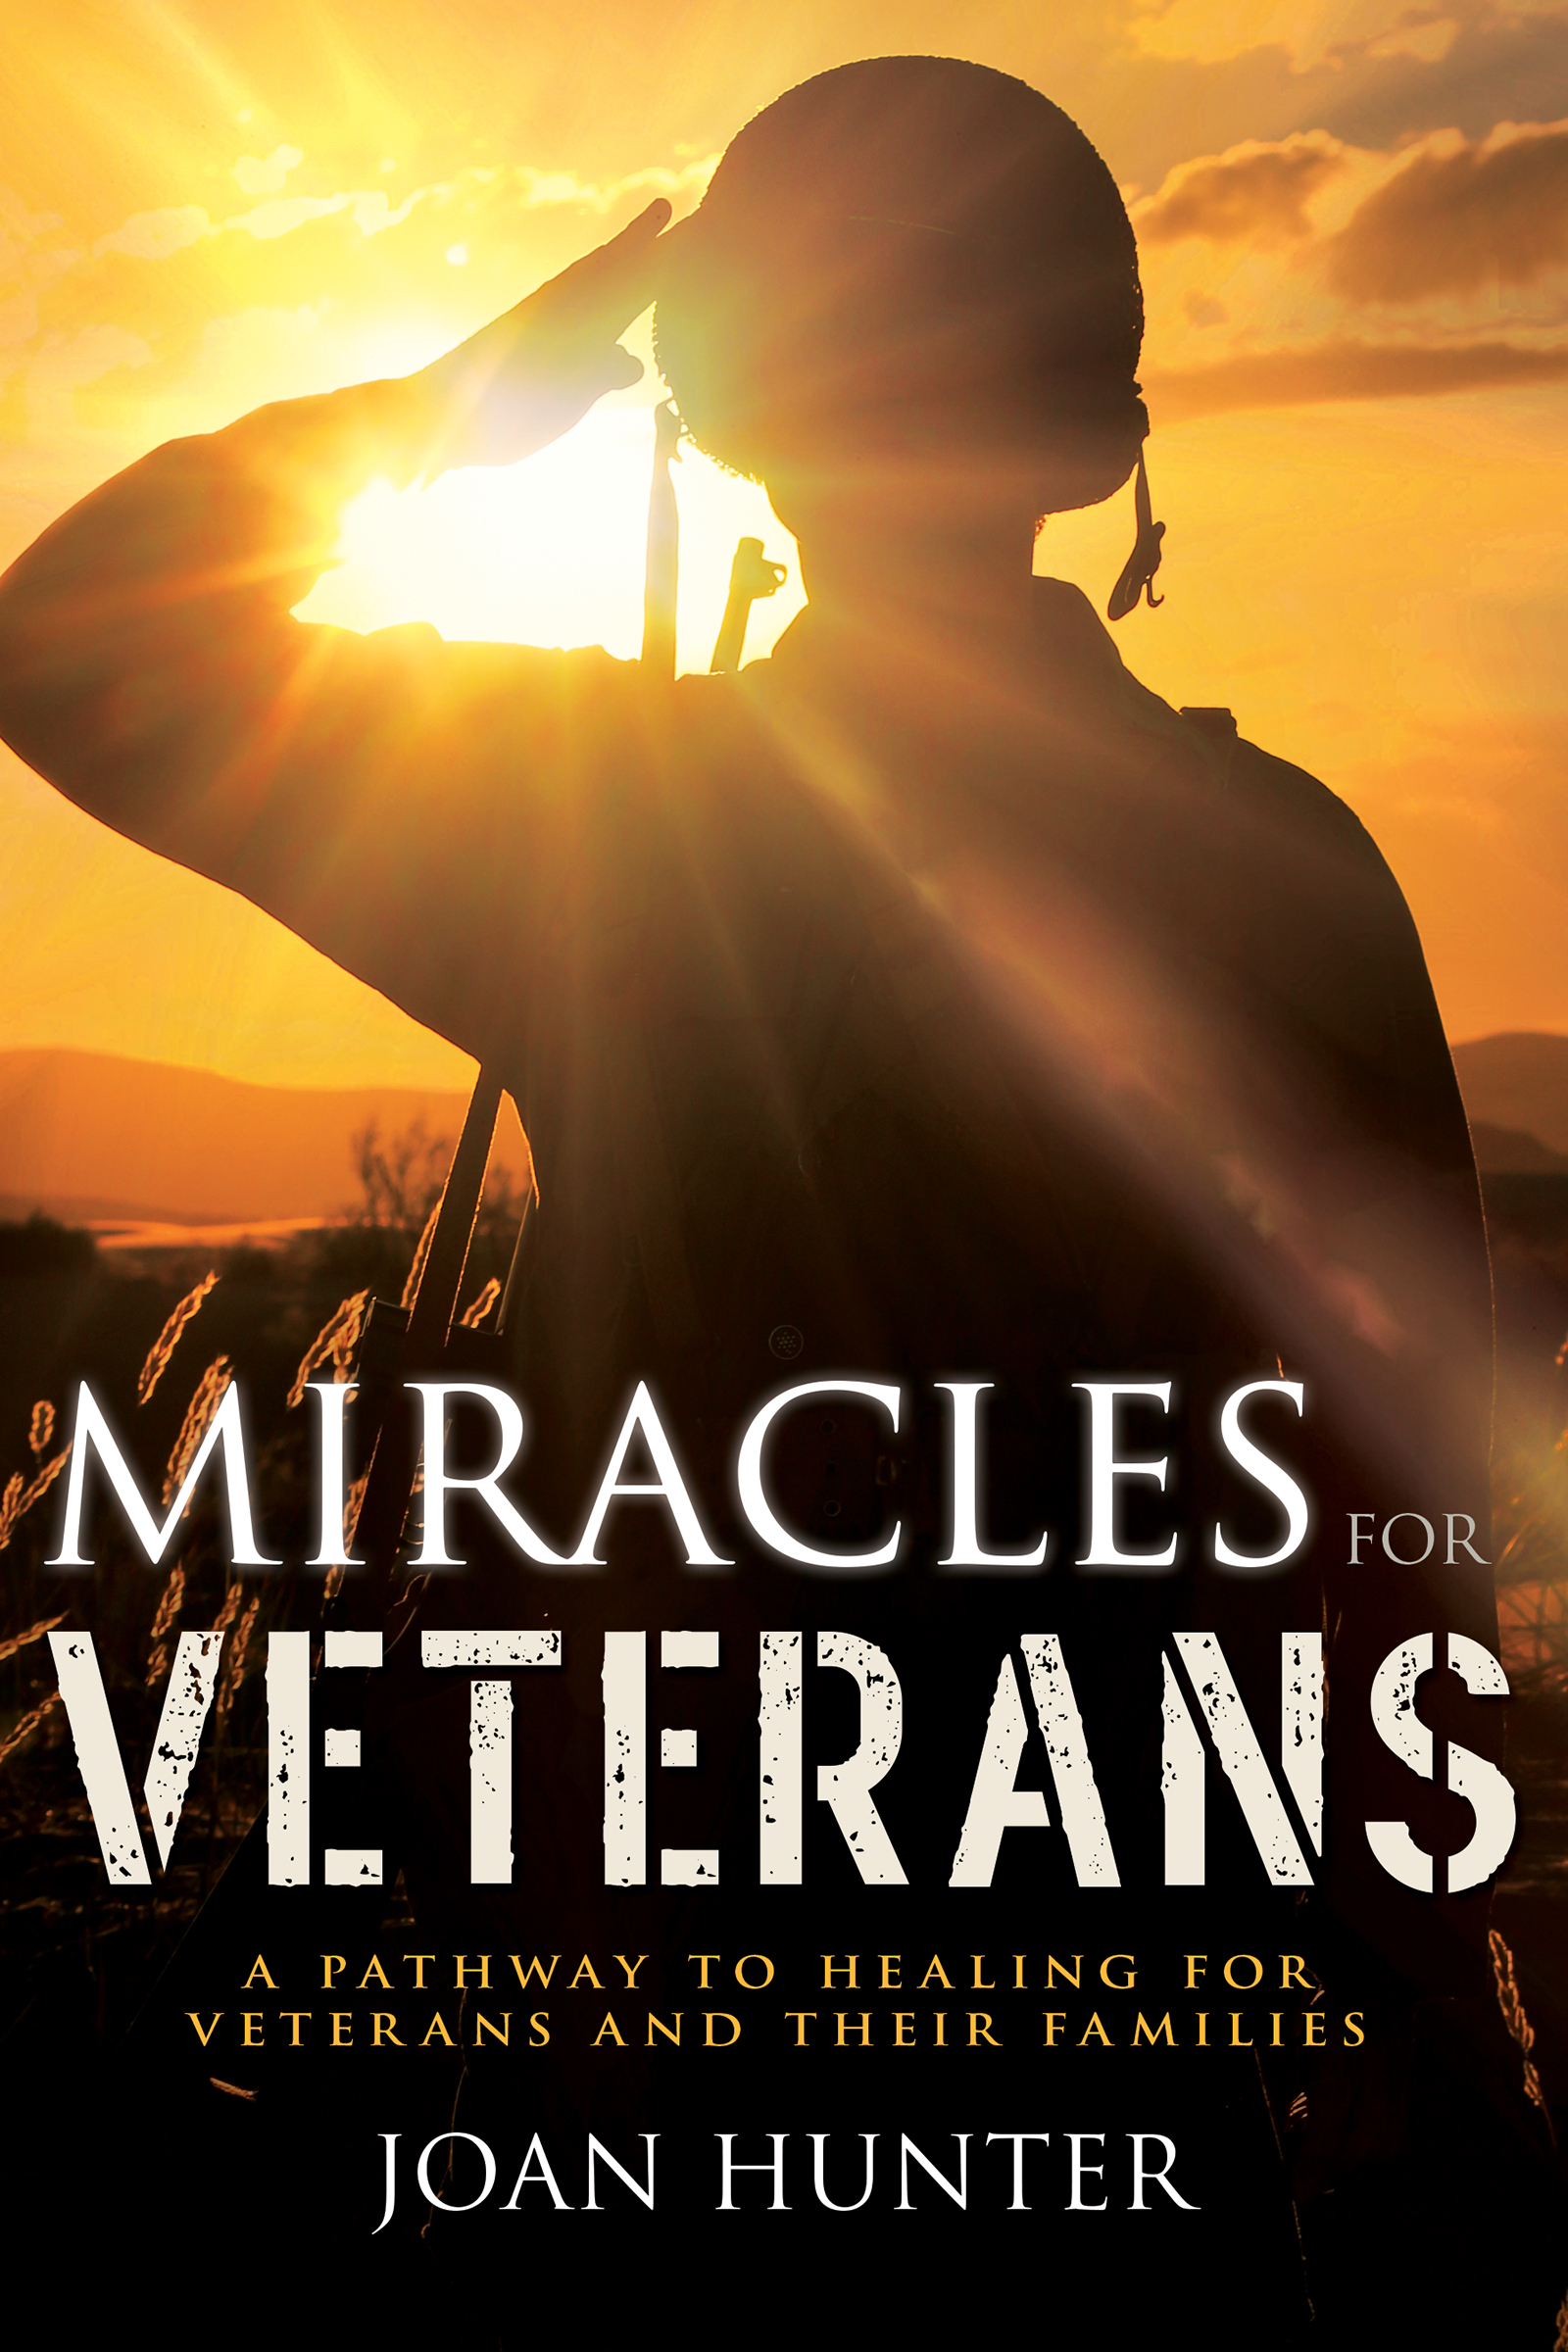 Miracles for Veterans: A Pathway to Healing for Veterans and Their Families